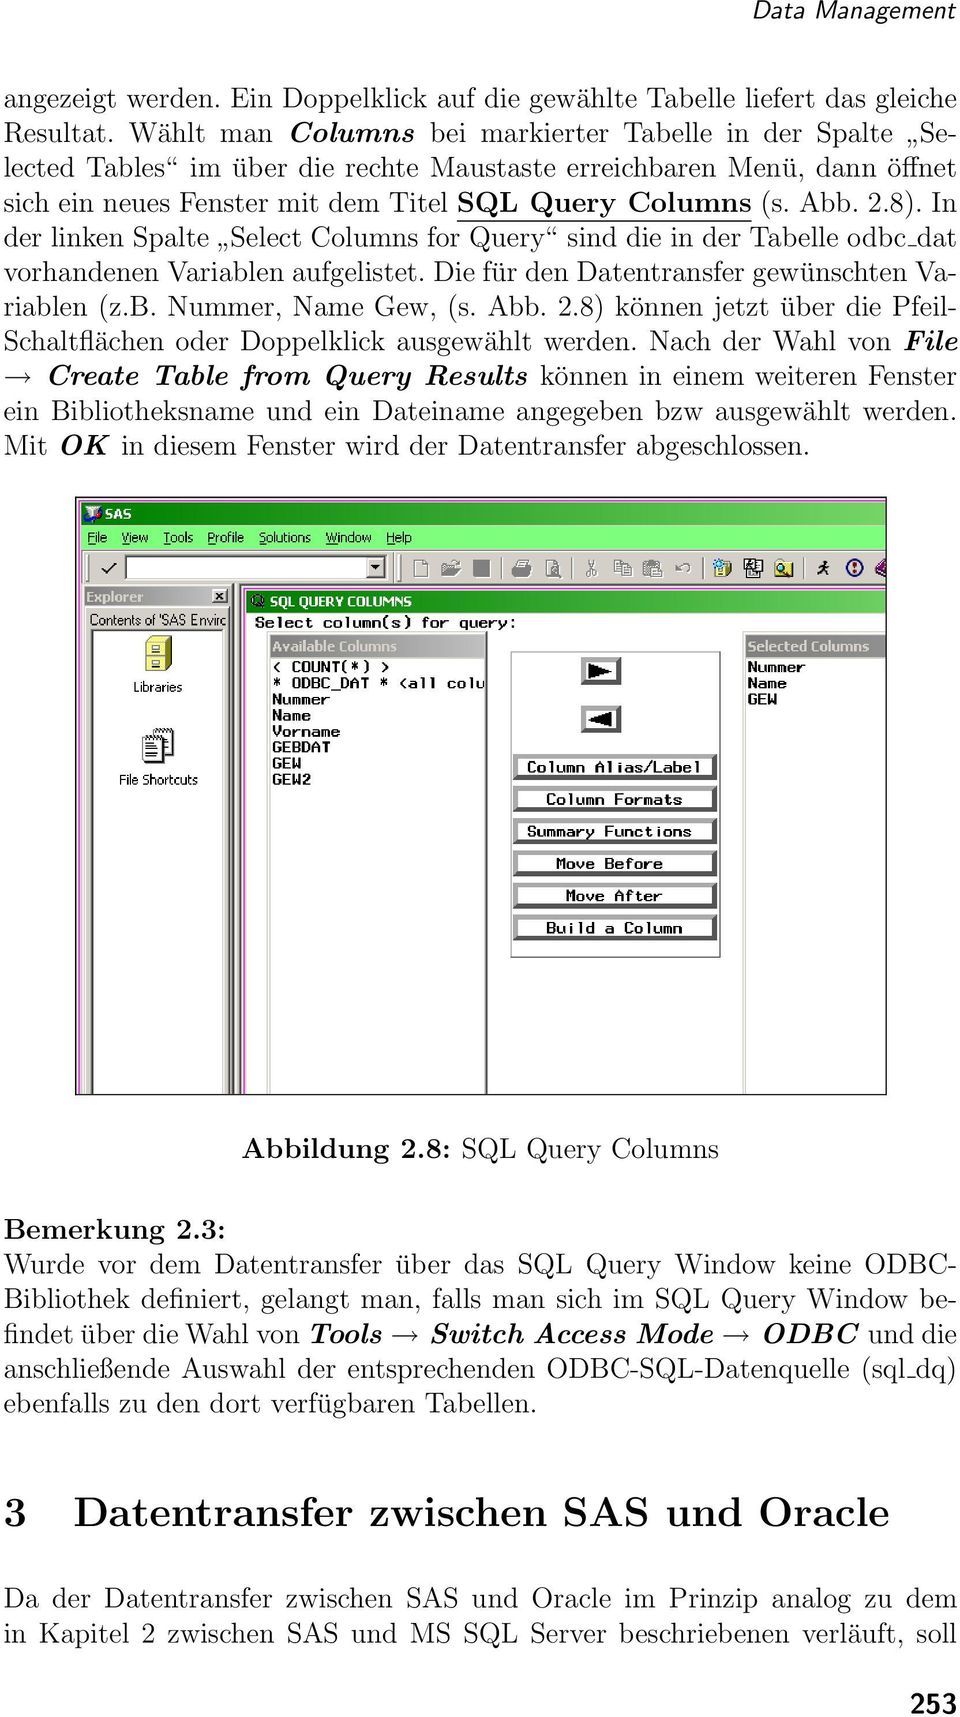 In der linken Spalte Select Columns for Query sind die in der Tabelle odbc dat vorhandenen Variablen aufgelistet. Die für den Datentransfer gewünschten Variablen (z.b. Nummer, Name Gew, (s. Abb. 2.